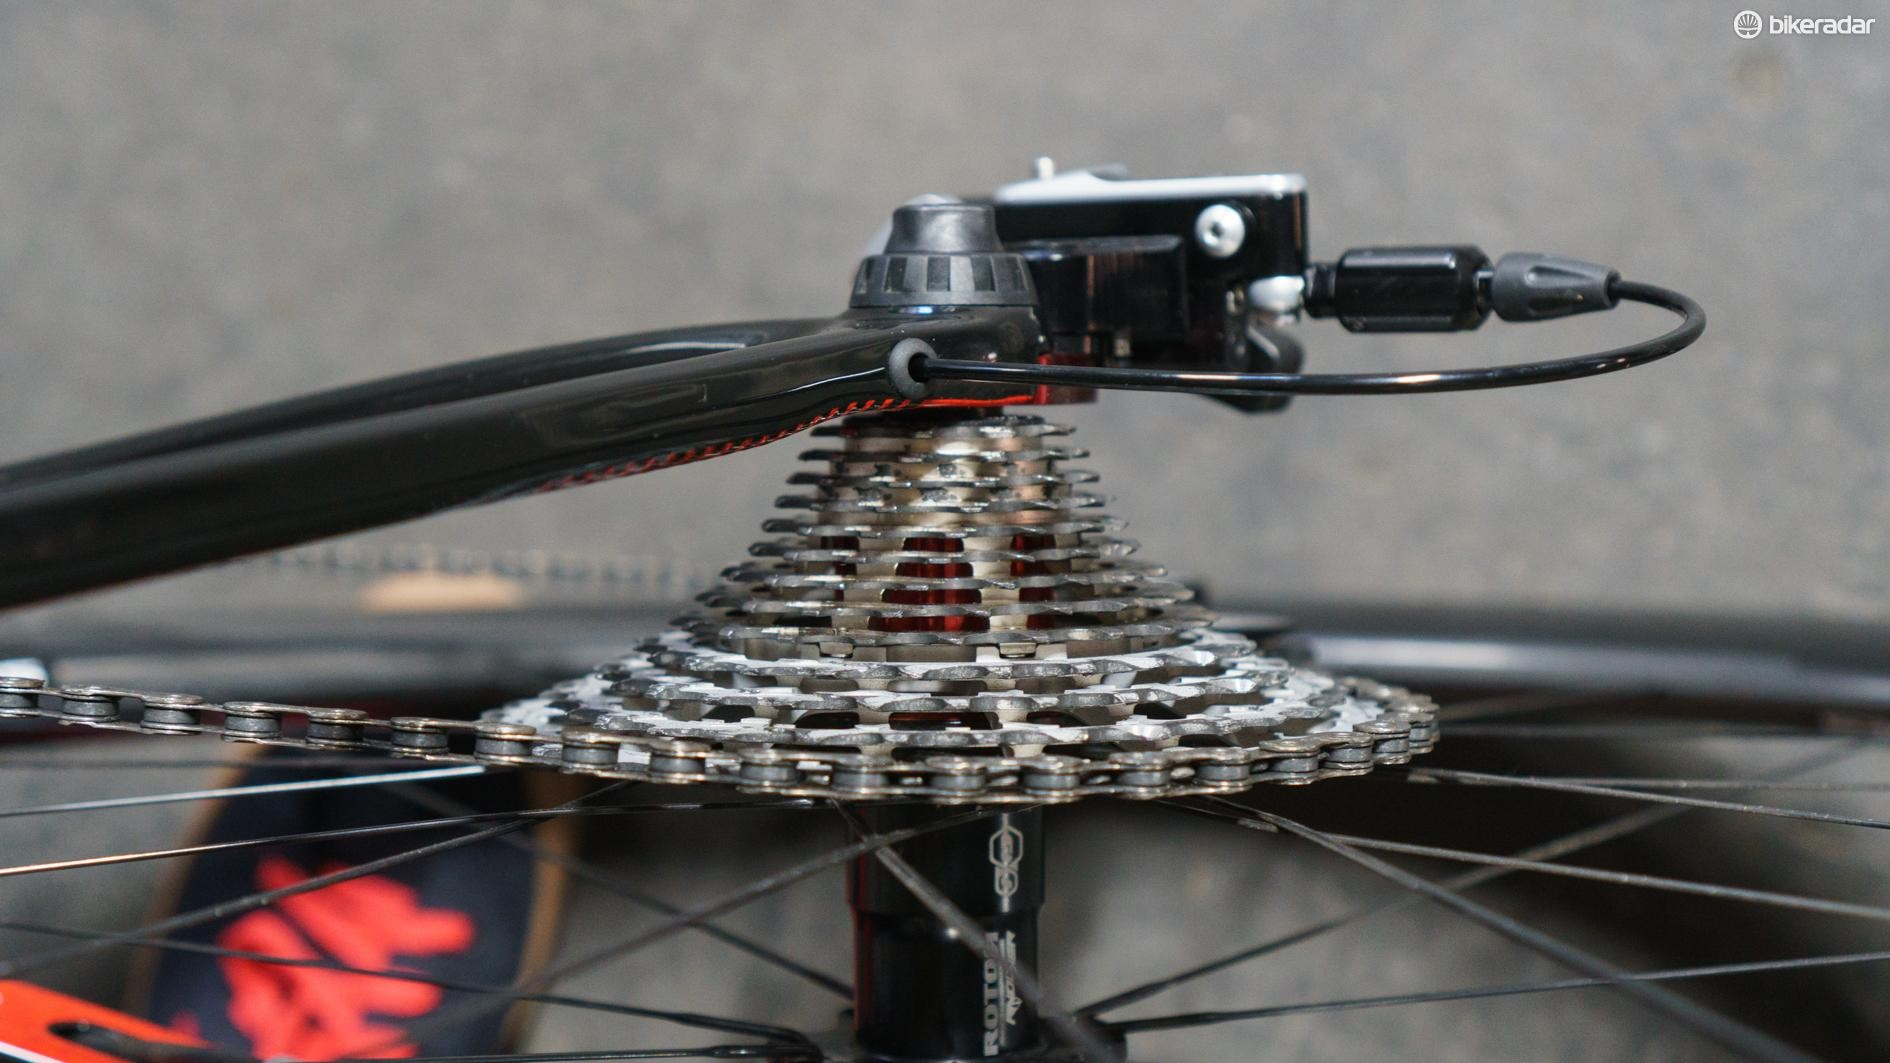 The 13-speed cassette is quite a thing to behold